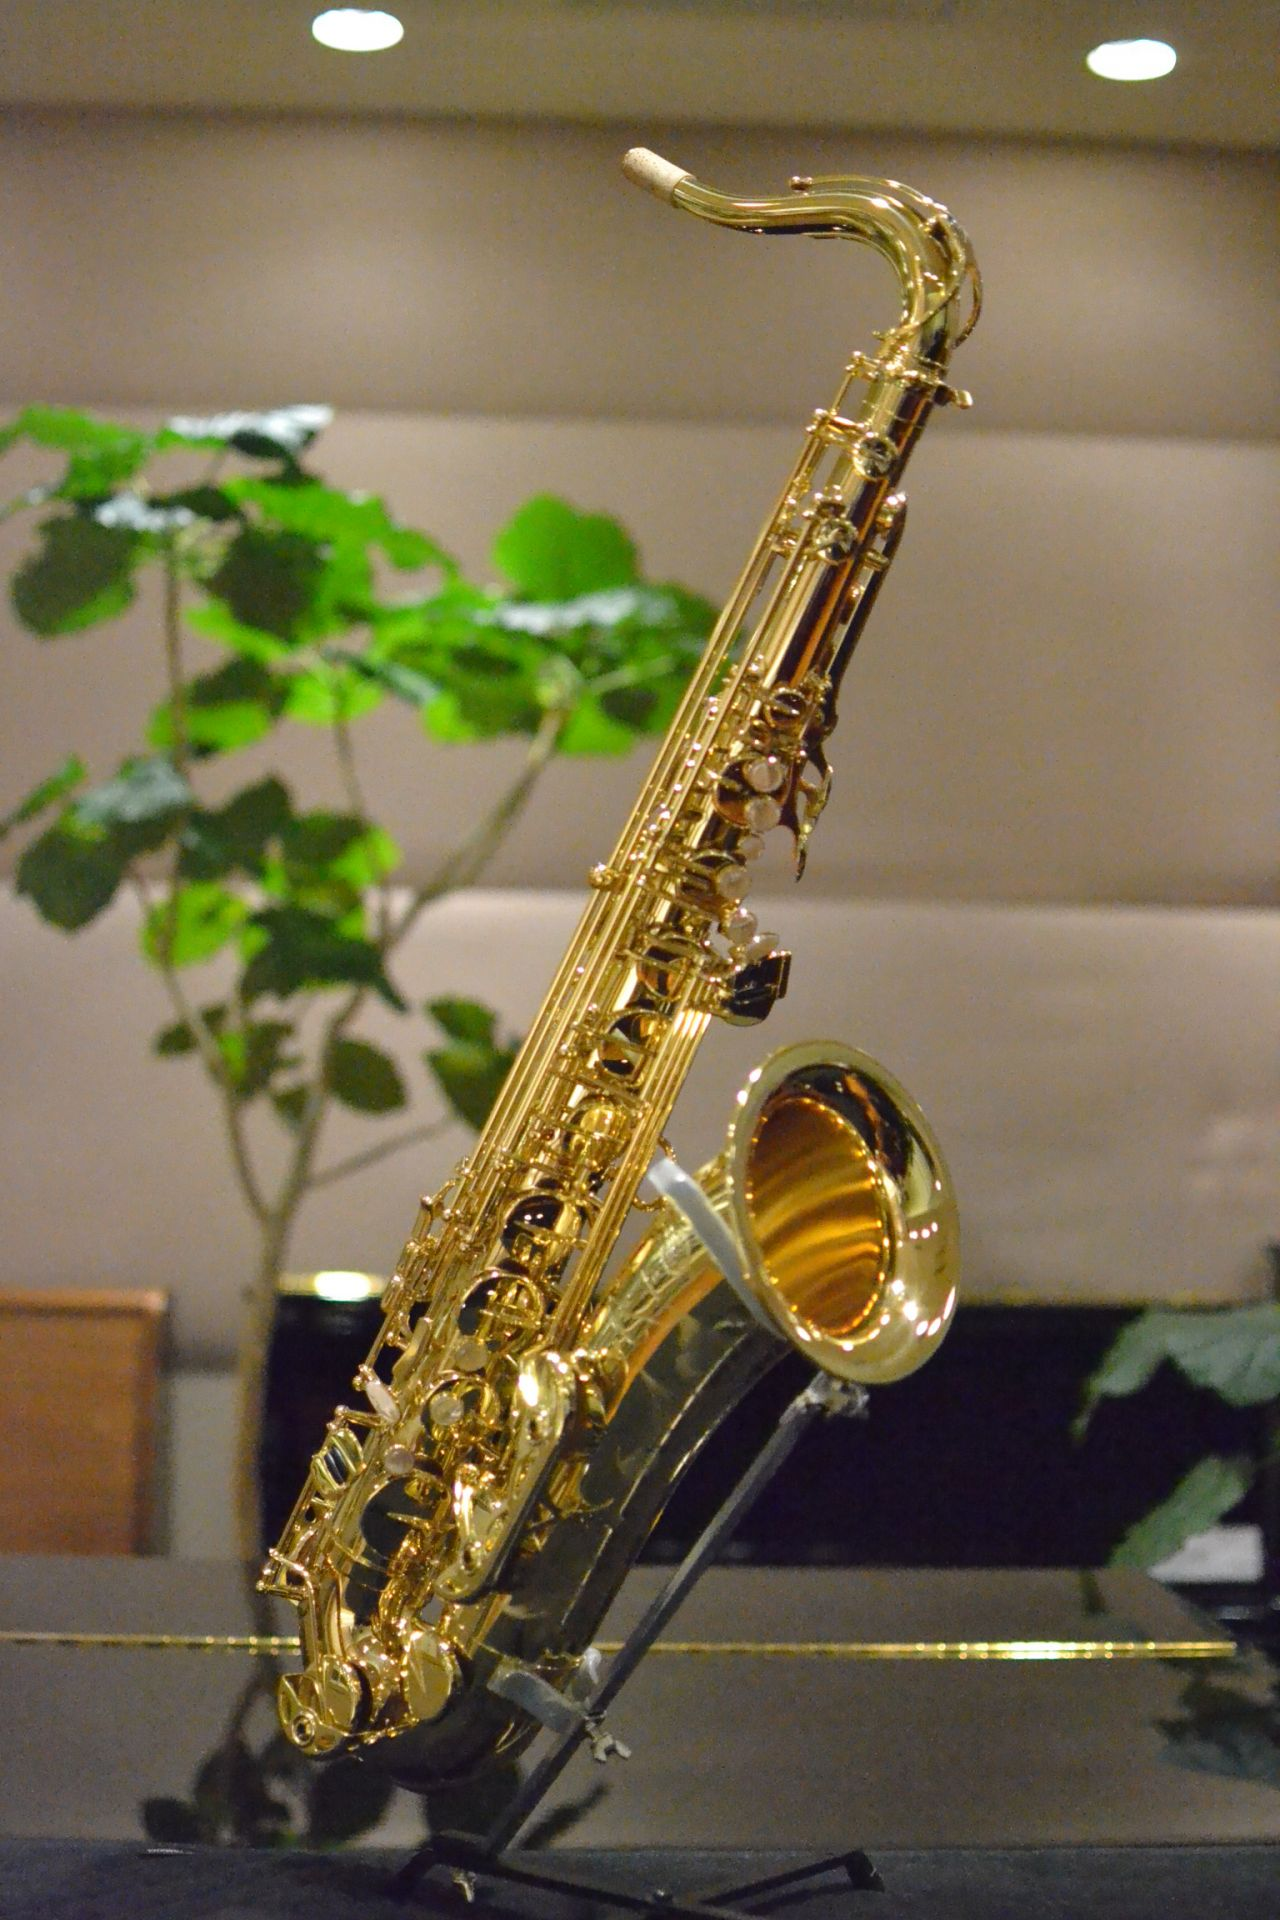 H.Selmer Reference 36